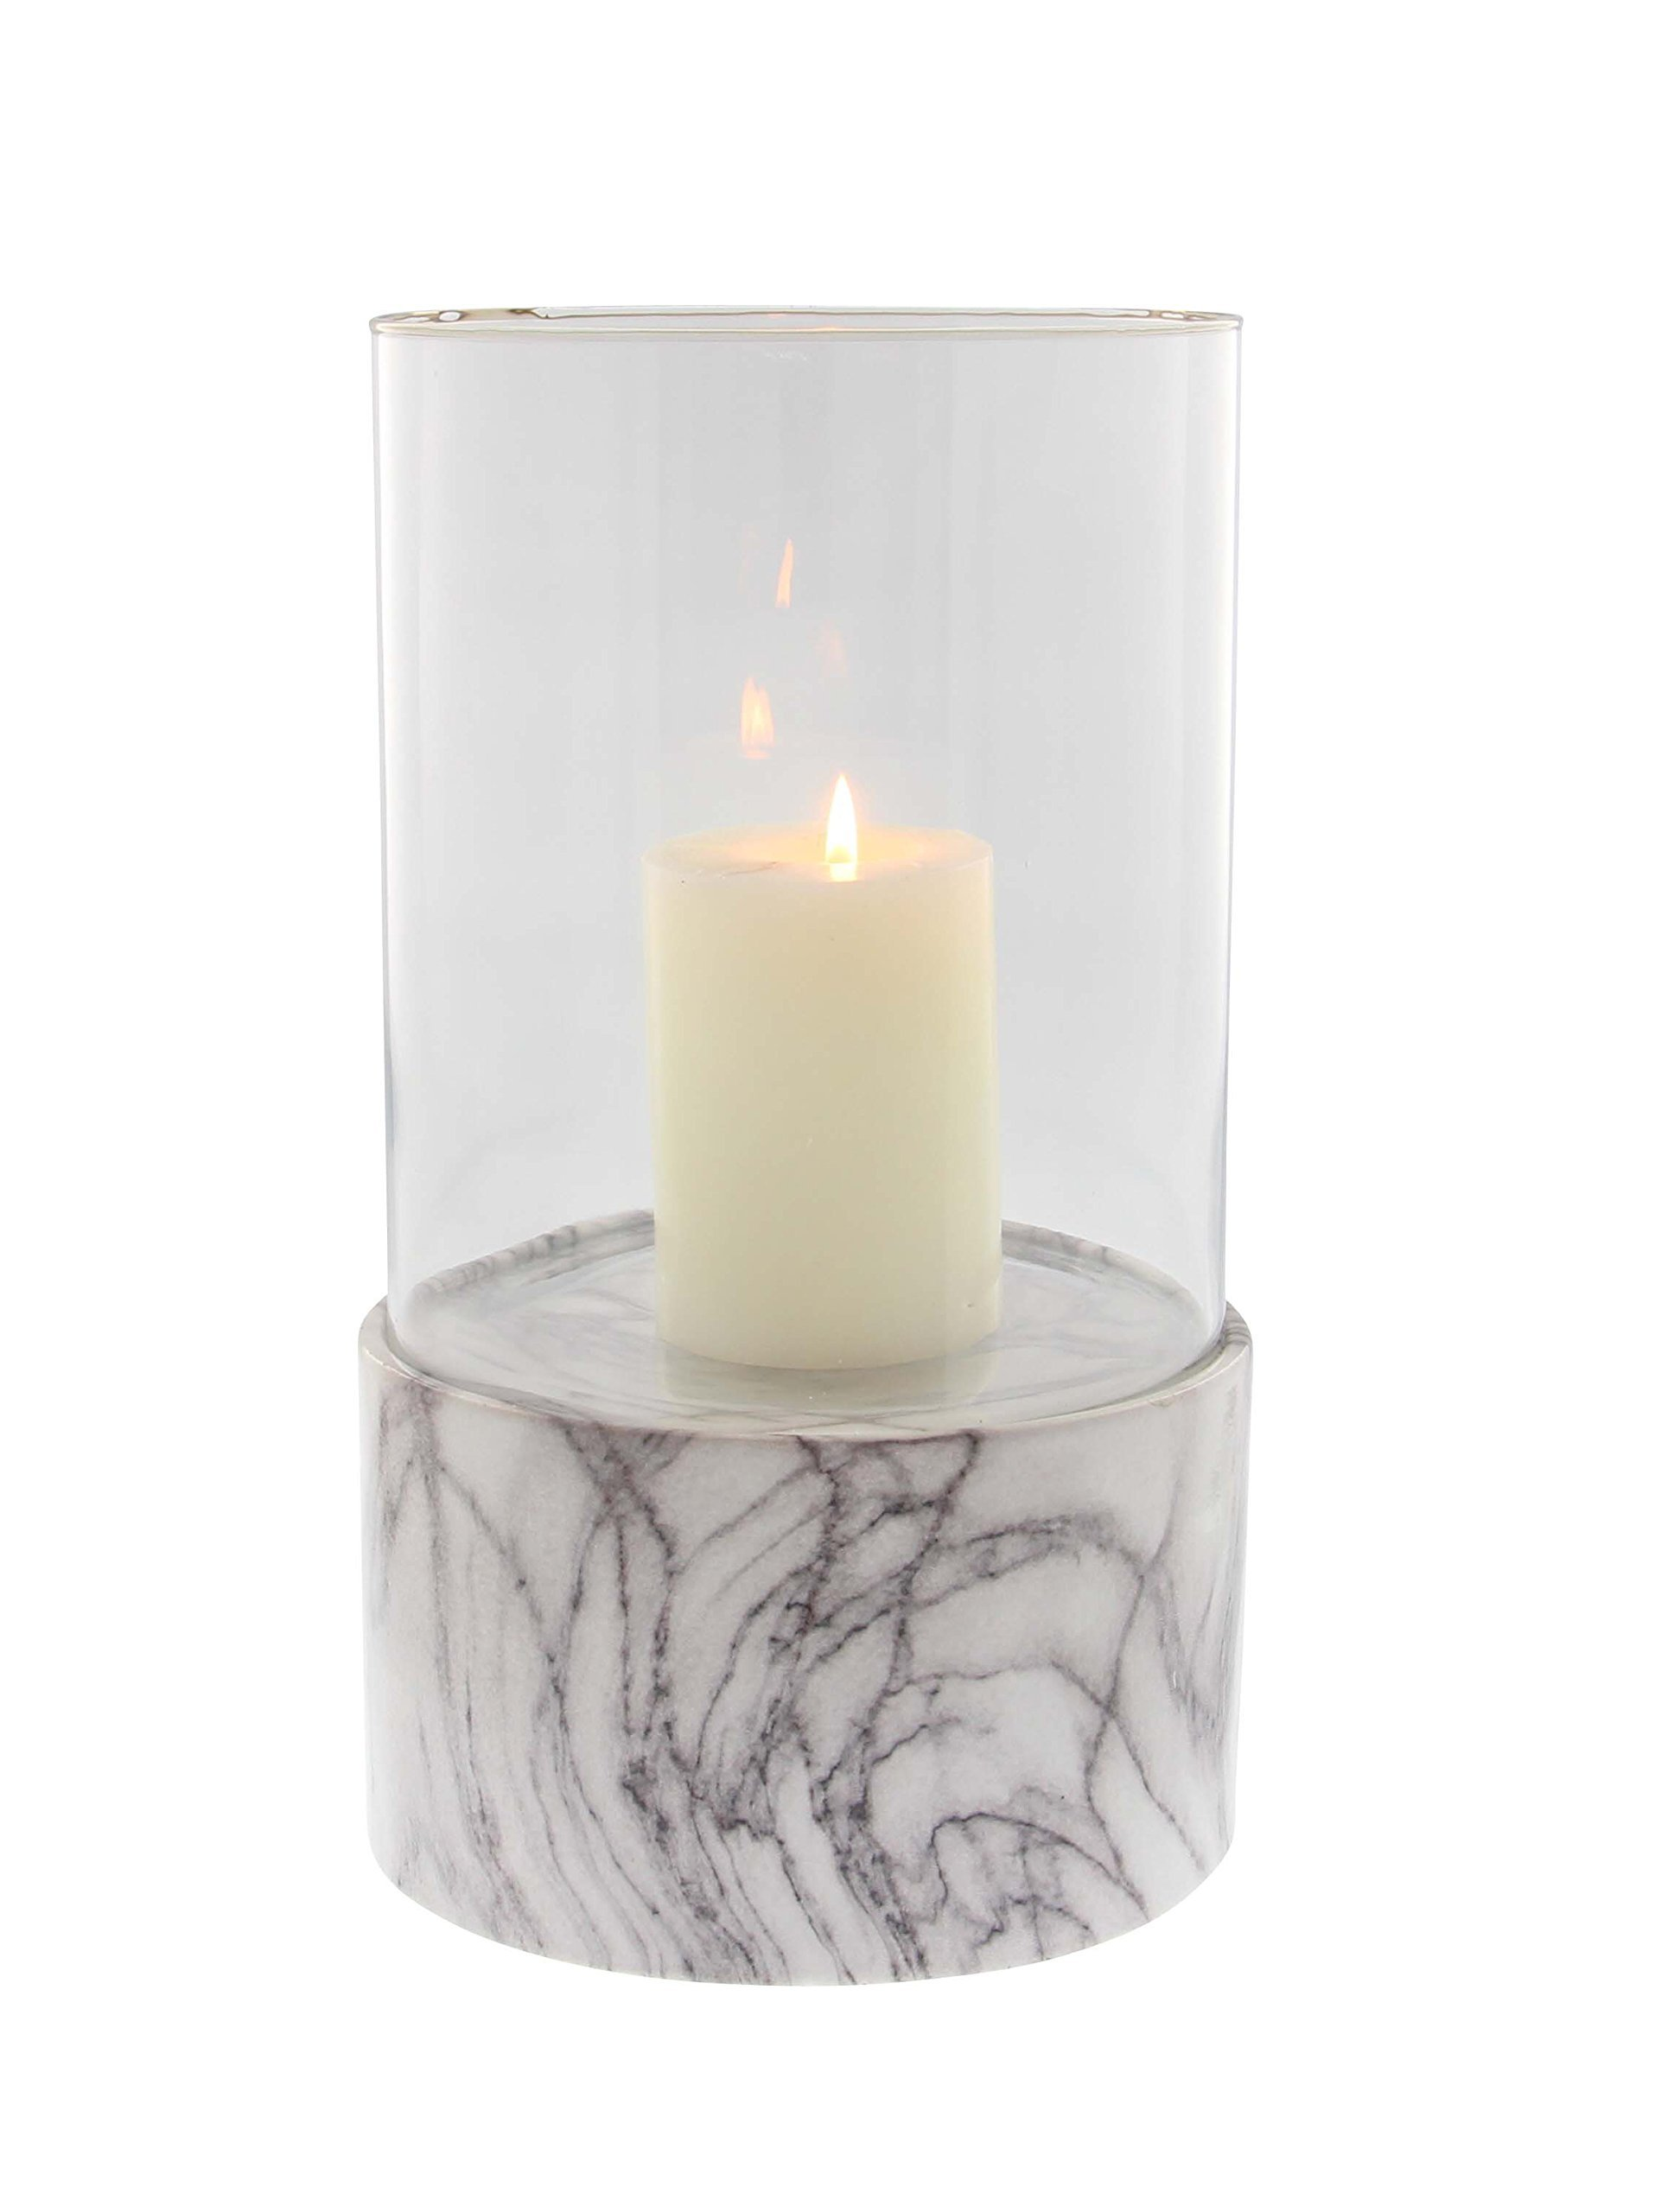 Deco 79 60760 Cylindrical Ceramic Glass Hurricane Candle Holder, 13'' x 8'', Gray/White/Clear